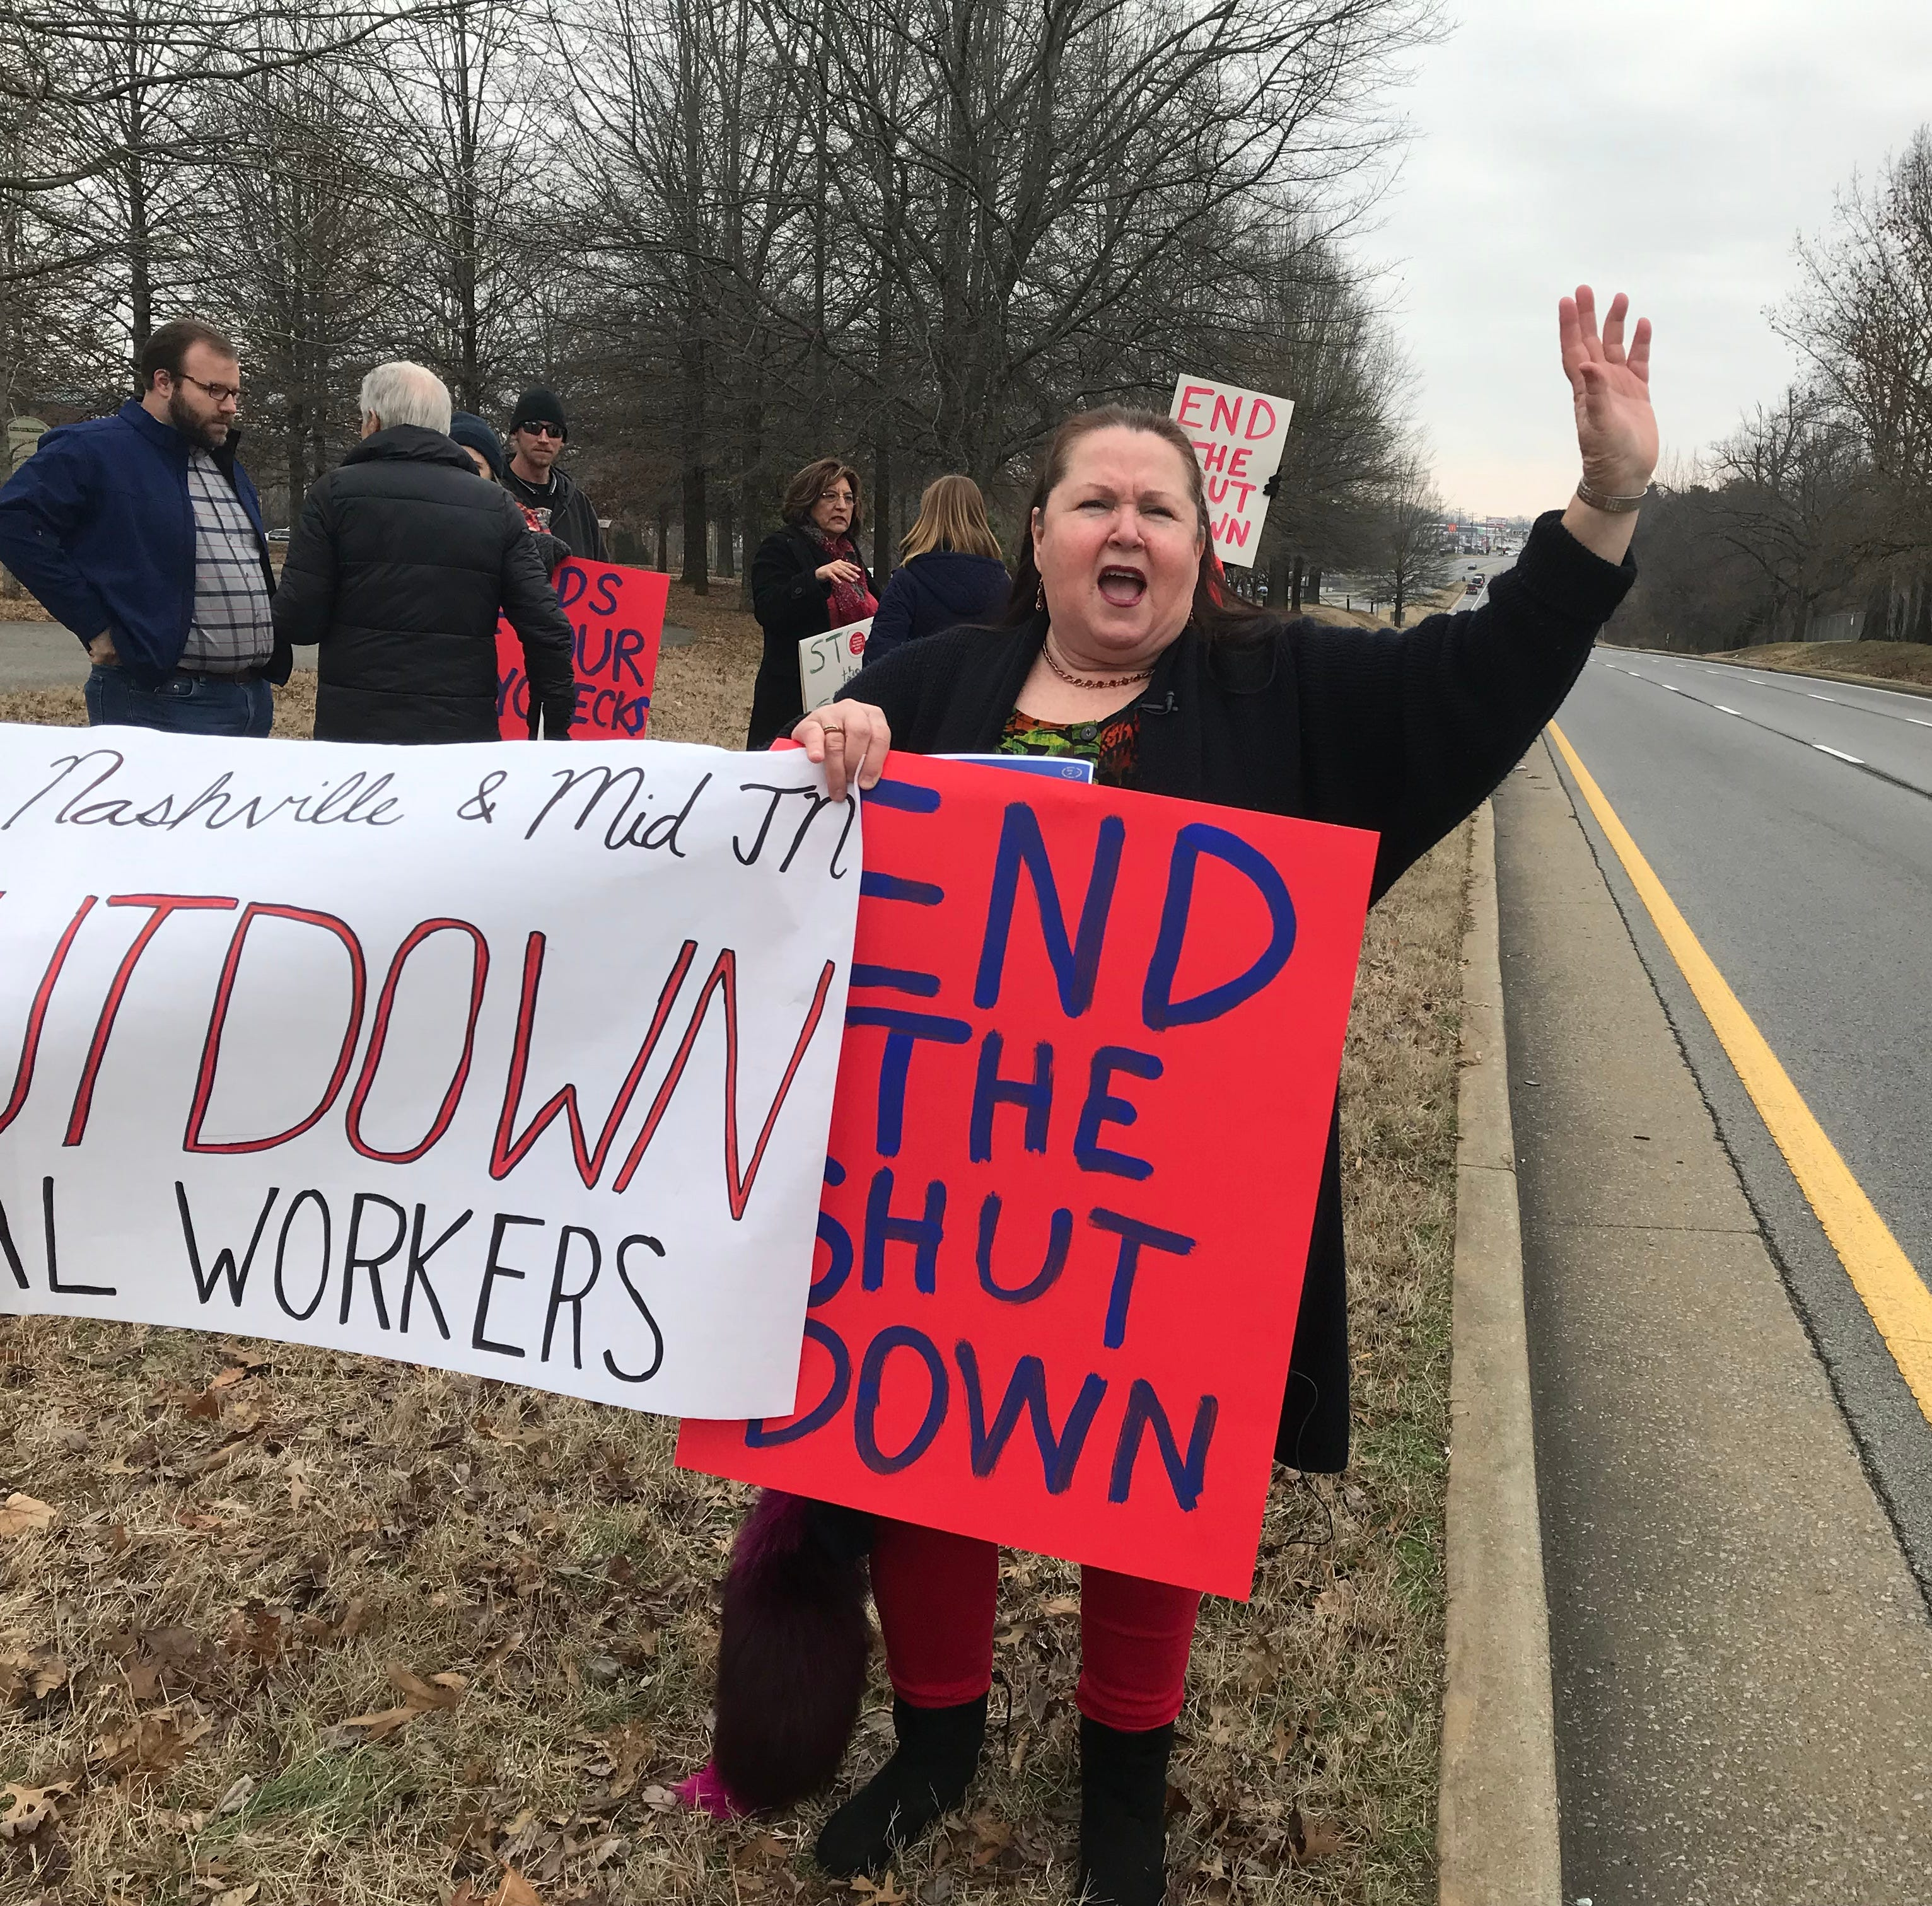 Union and supporters rally in Clarksville, urging Congress, Trump to end shutdown